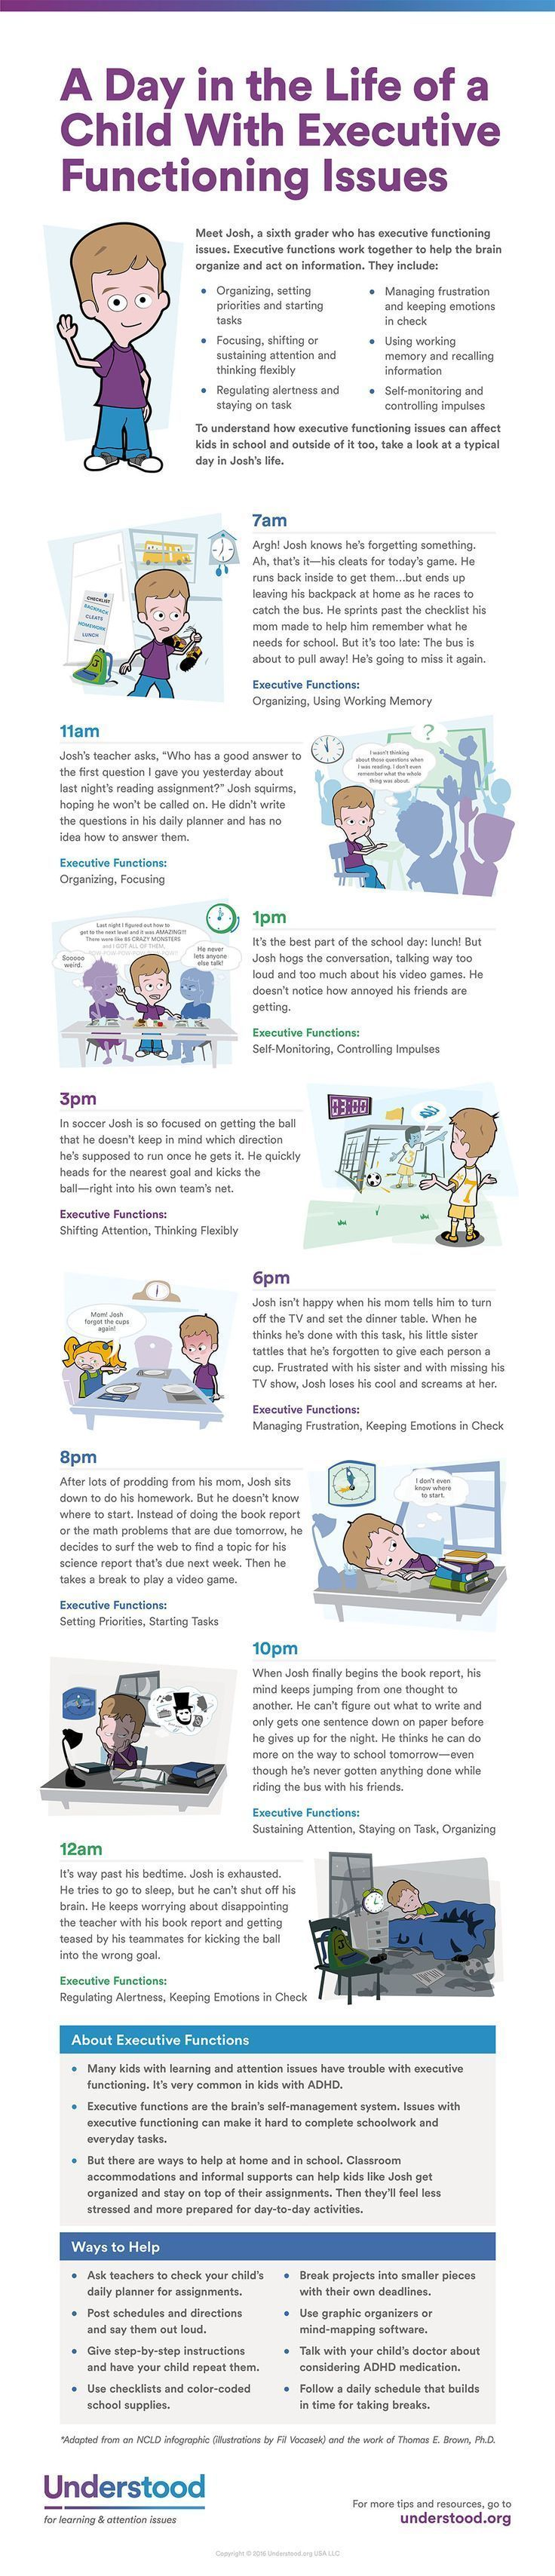 also Executive Function Worksheets for Adults or Smart Goal Setting together with 8 Key Executive Functions  Infograph as well 21 Elegant Executive Functioning Worksheets Executive Function moreover Memory Worksheets for Adults Working Memory Exercises New Executive moreover executive function worksheets for adults plr worksheets adhd as well  also Addictive Behaviors Worksheet Inspirational 22 Beautiful Executive also adhd worksheets for adults further Therapy Worksheets For Kids Printable Mental Health Children Images also Executive Functioning   Self Awareness  Self Discipline by Behavior furthermore  besides Cutting Divided Attention Worksheets For Adults Category Directions besides Executive Functioning Lessons and Activities by Pathway 2 Success together with 7th Grade Math Worksheets – Page 399 – Kaliz co together with Executive Functioning Free Workbook Executive Functioning Free. on executive function worksheets for adults